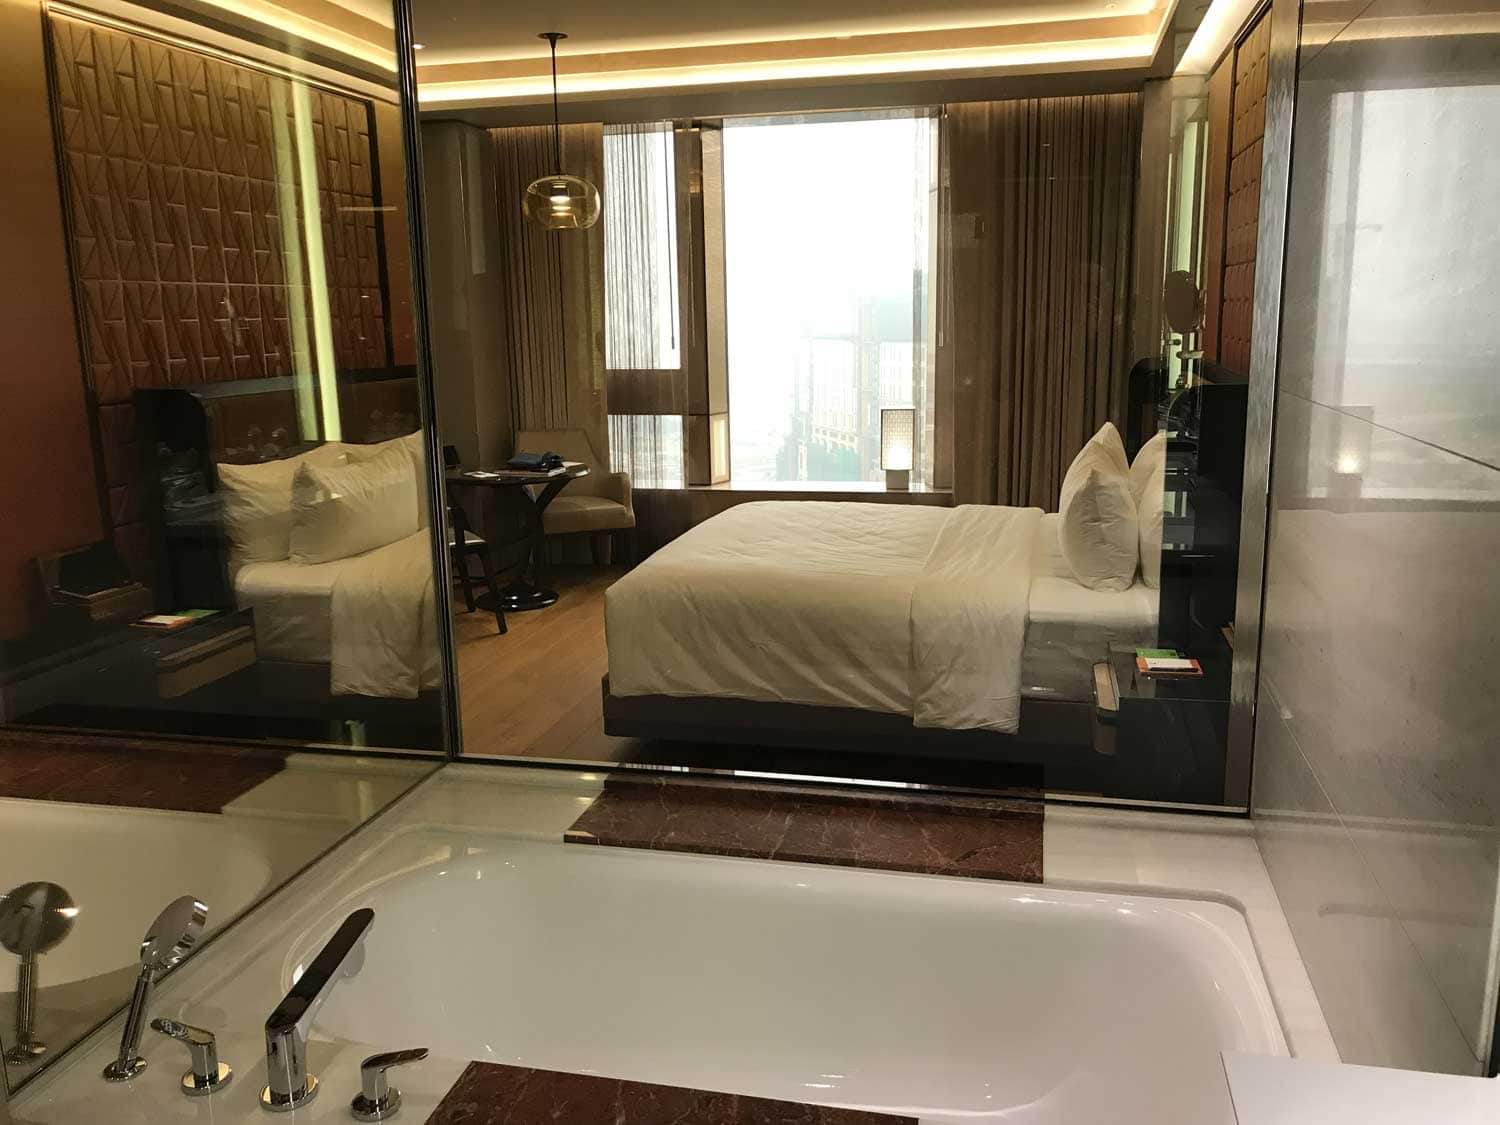 MGM Cotai Resort King room view from the bathroom